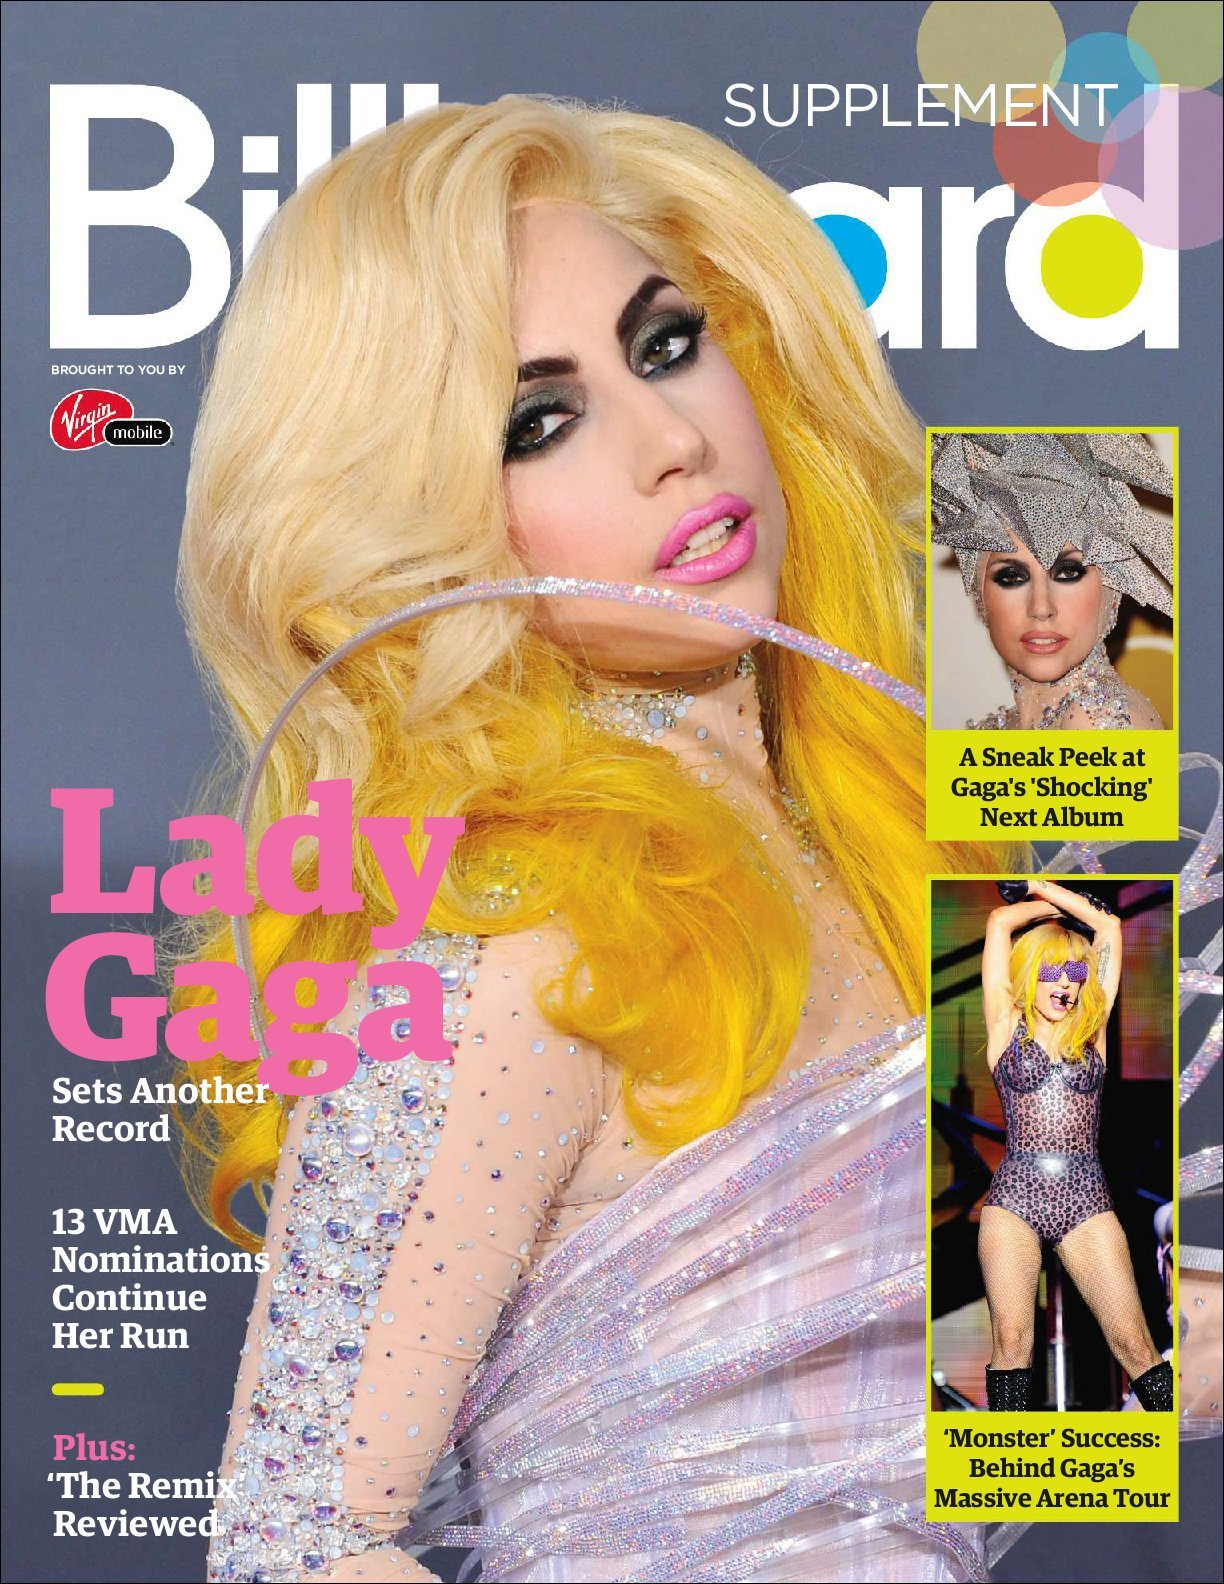 Lady Gaga Billboard Digital Edition Supplement Digital